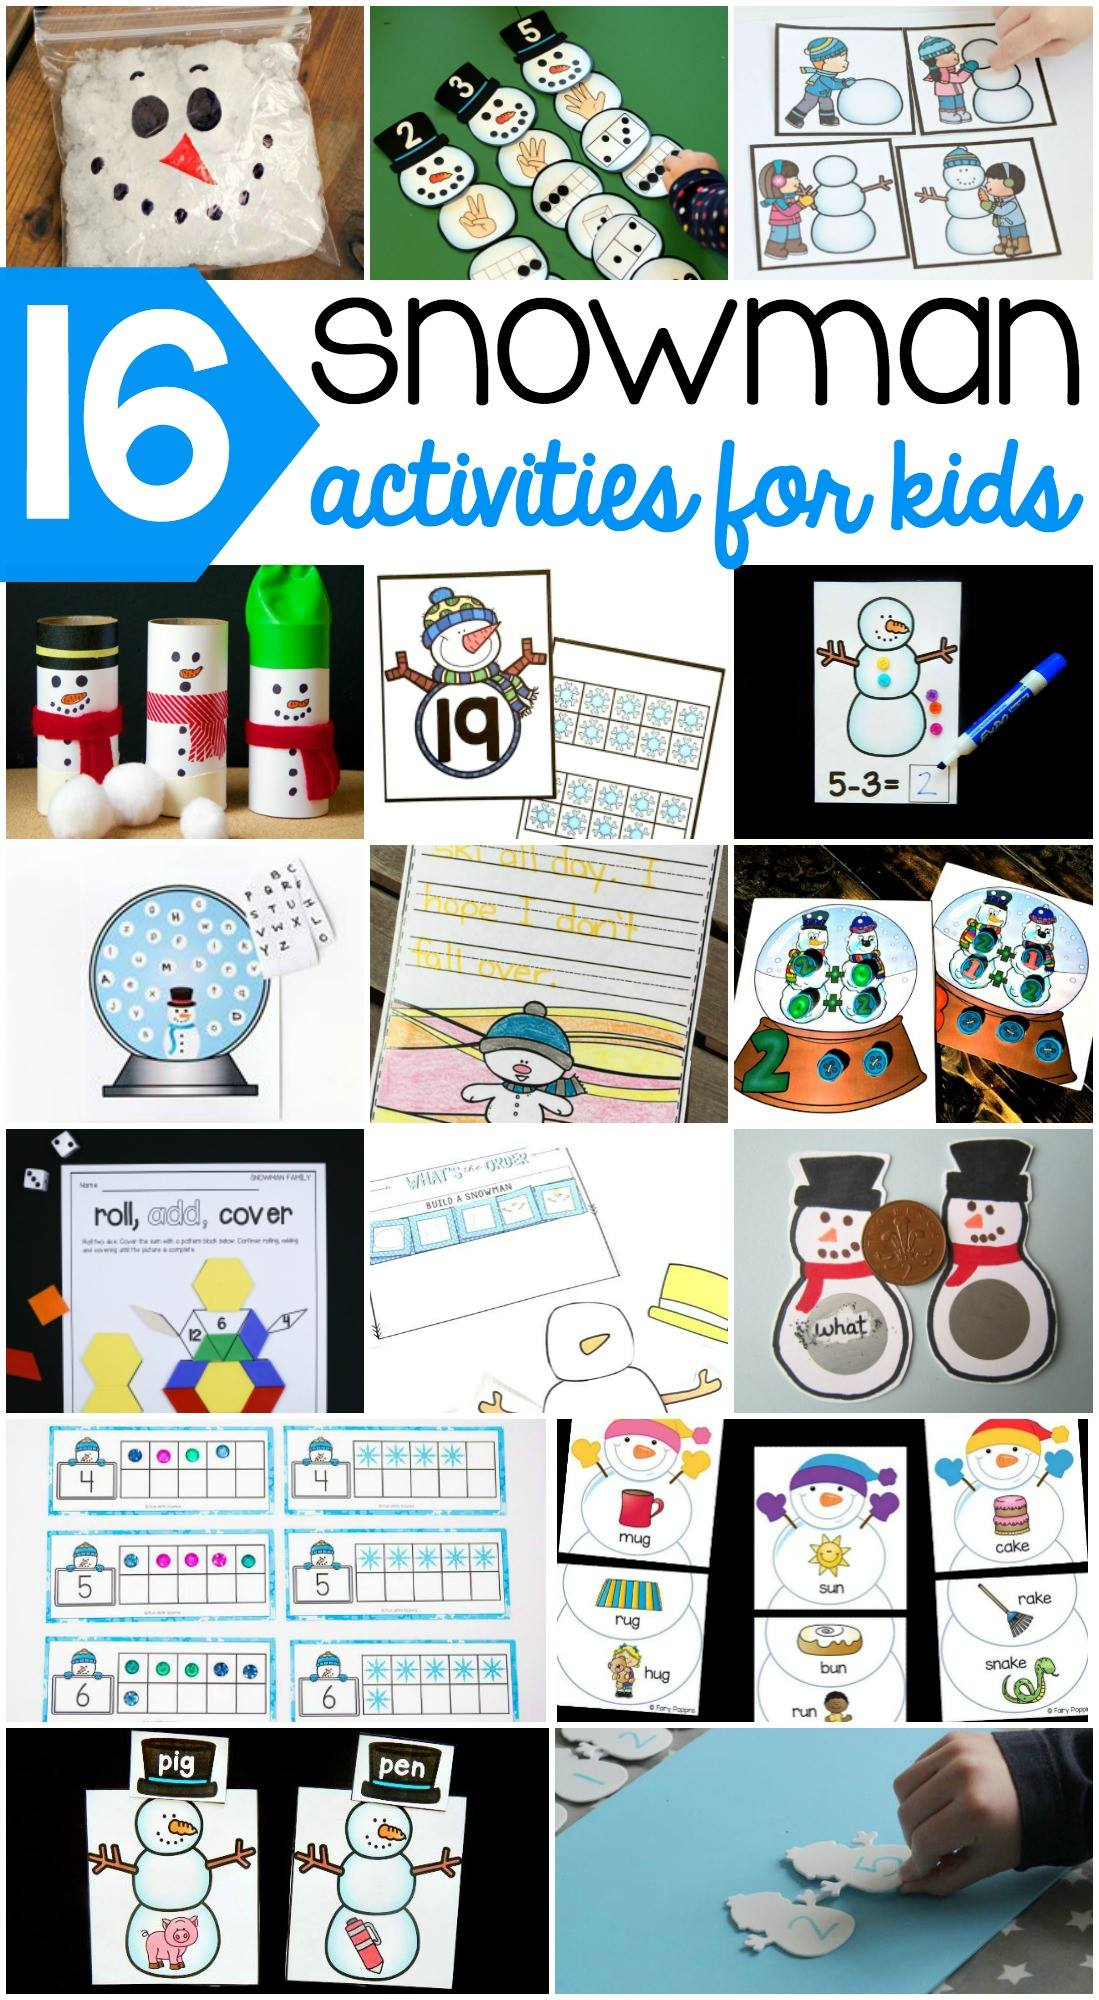 So many fun snowman activities for kids!